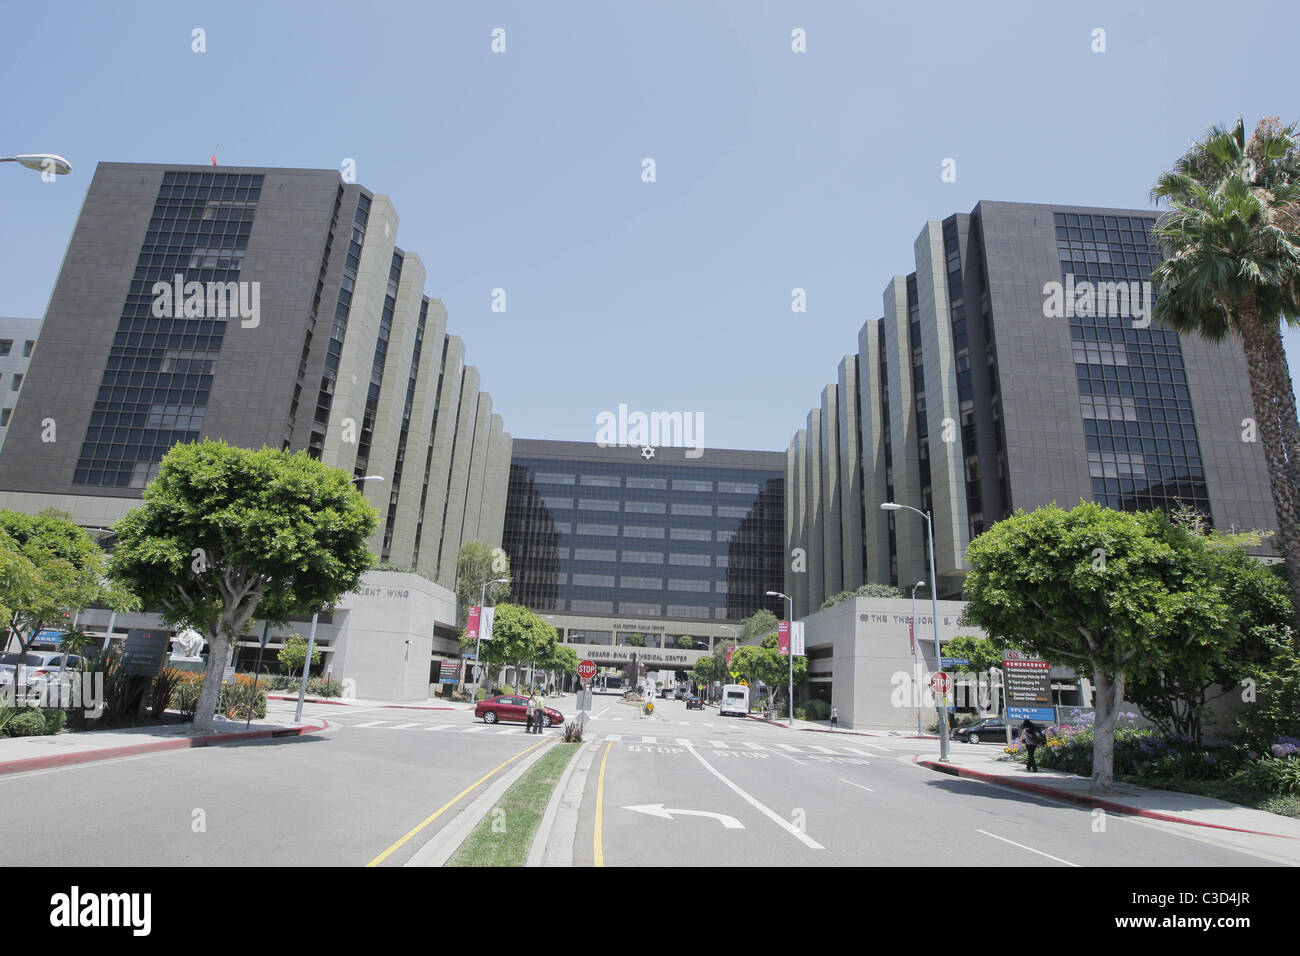 Atmosphere Michael Jackson has been admitted to Cedars-Sinai